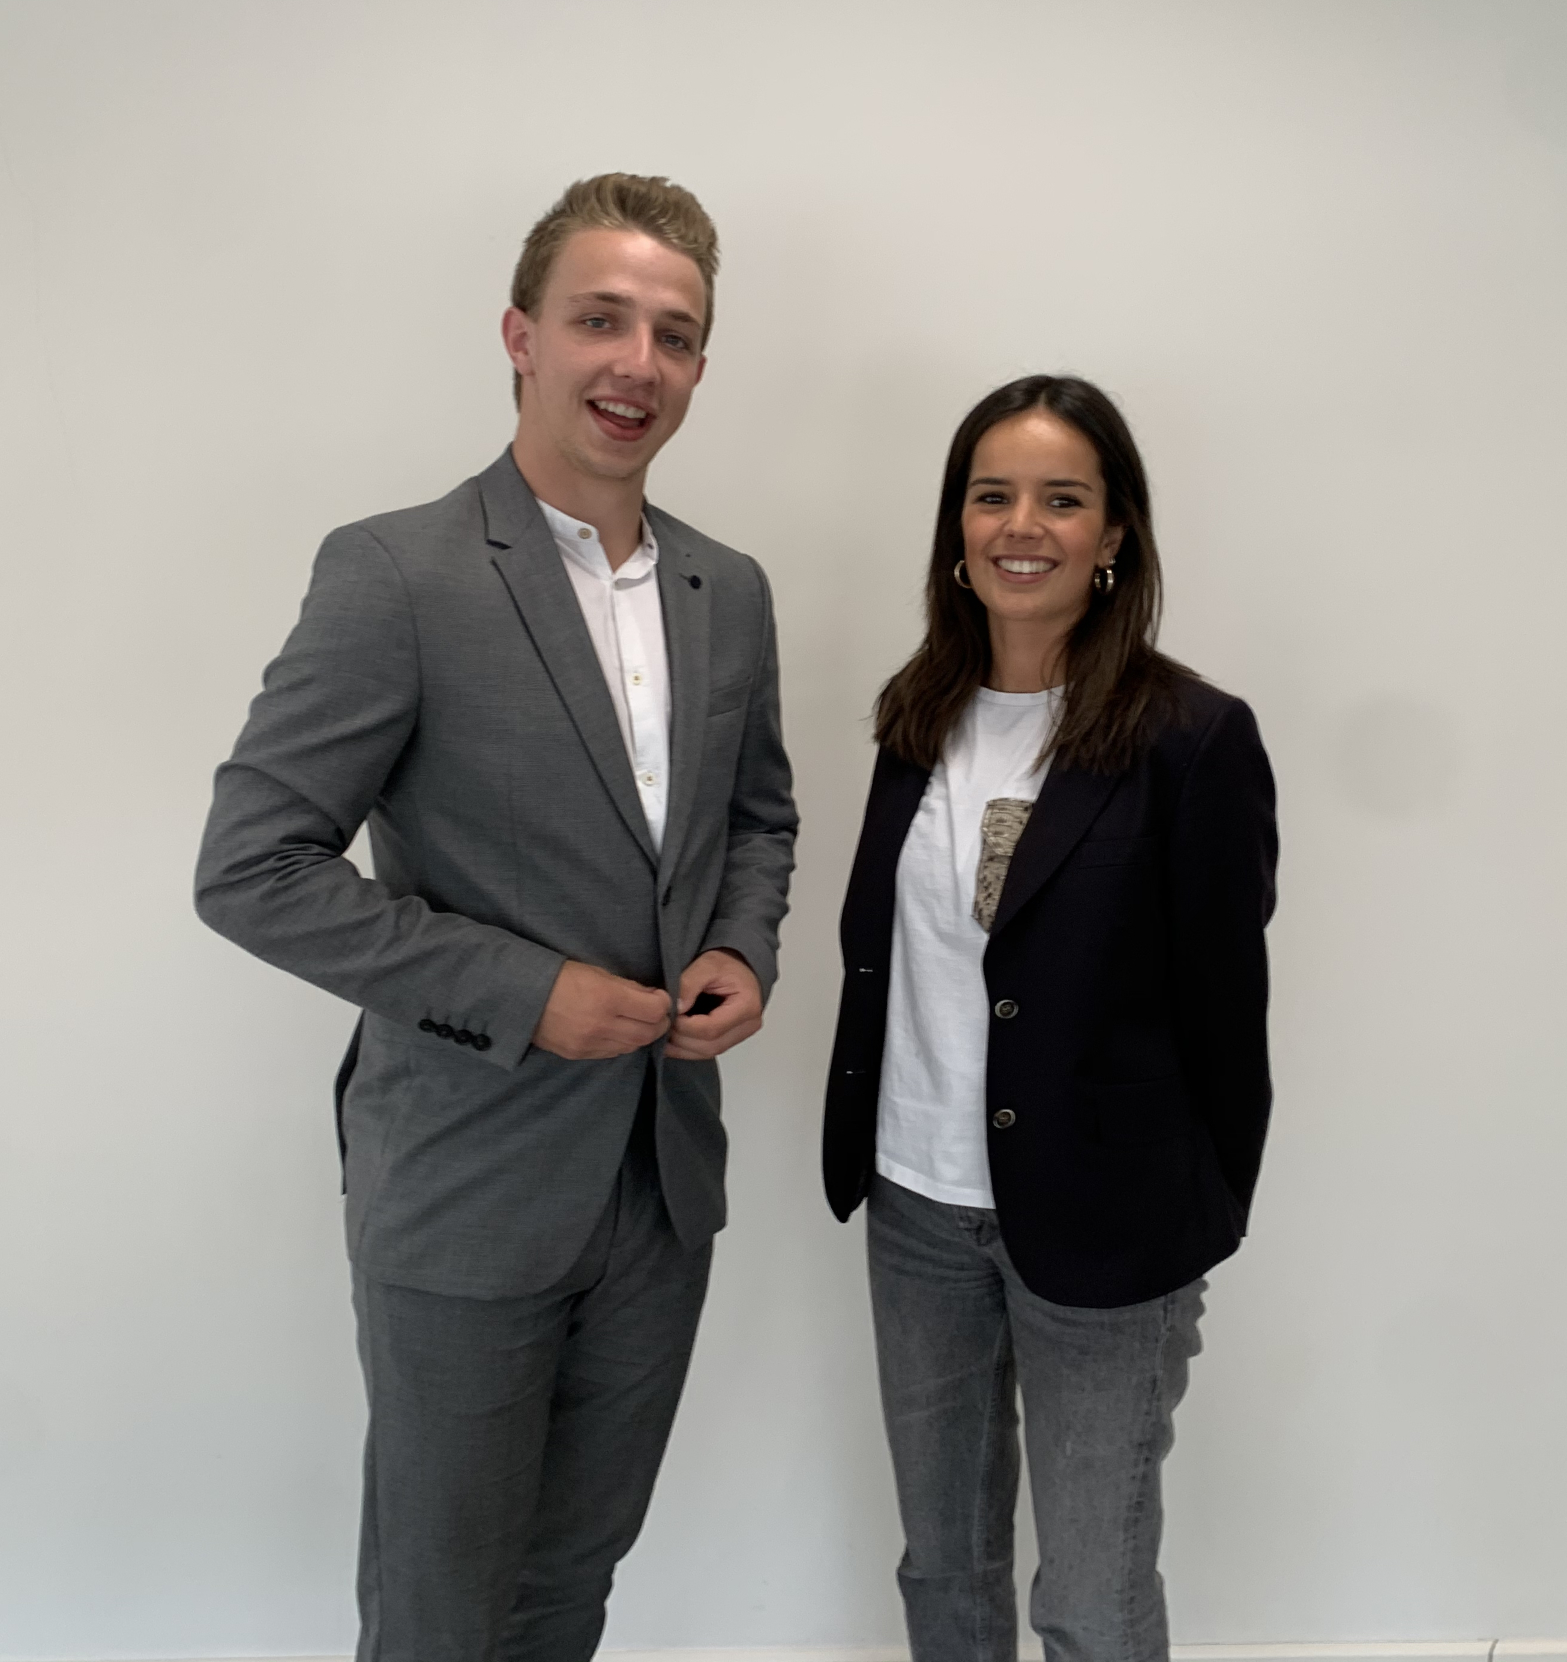 Traineeship Sarah and Matthias TCM 2020